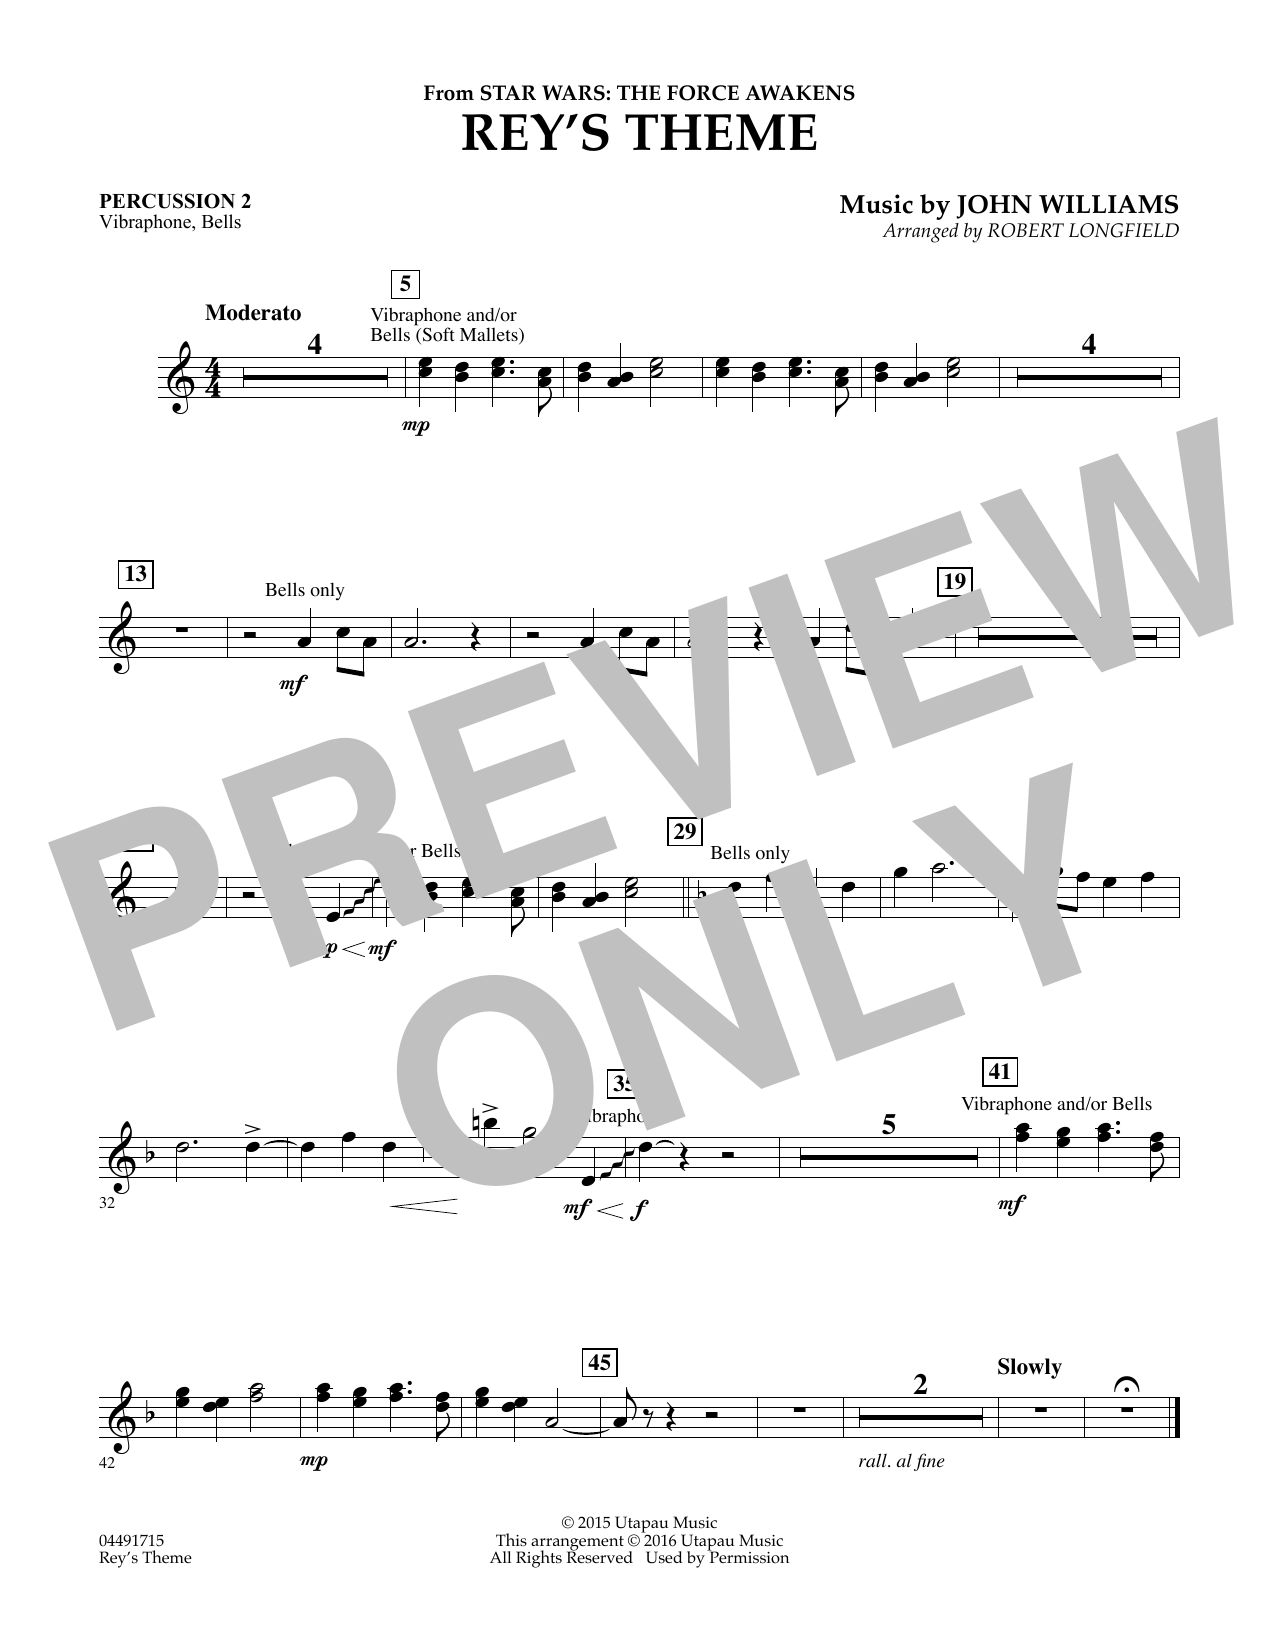 Rey's Theme (from Star Wars: The Force Awakens) - Percussion 2 (Orchestra)